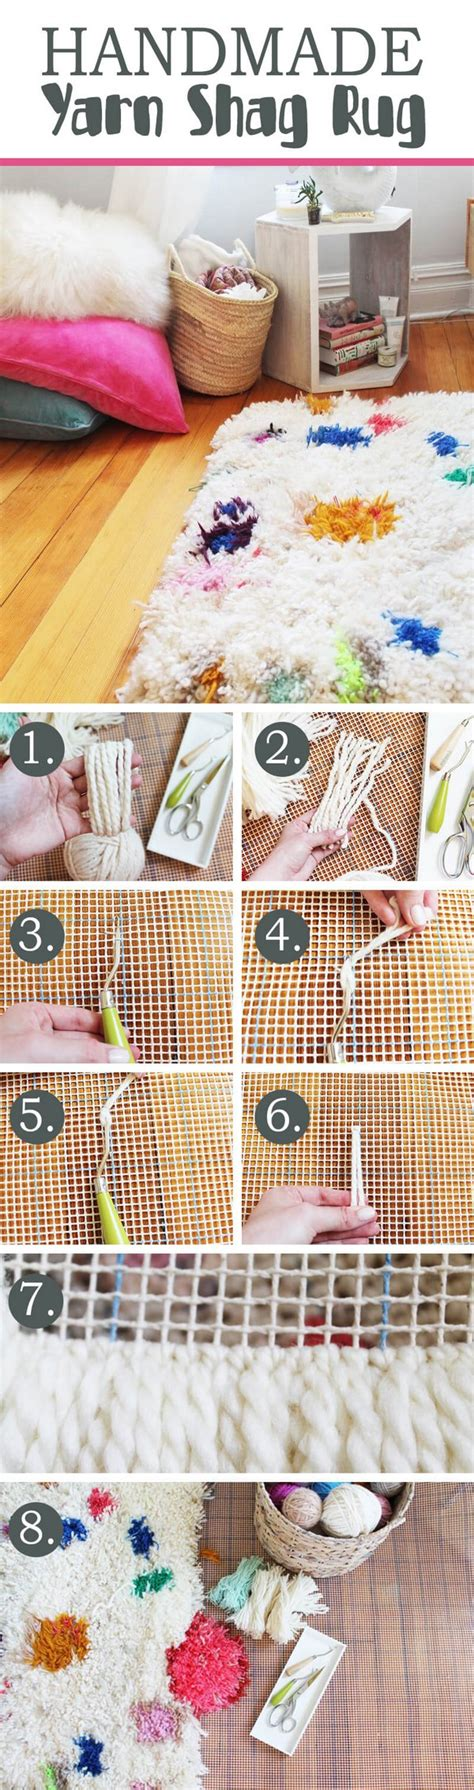 weekend diy home projects 18 exciting weekend diy home decor projects for your own trendy decor the in